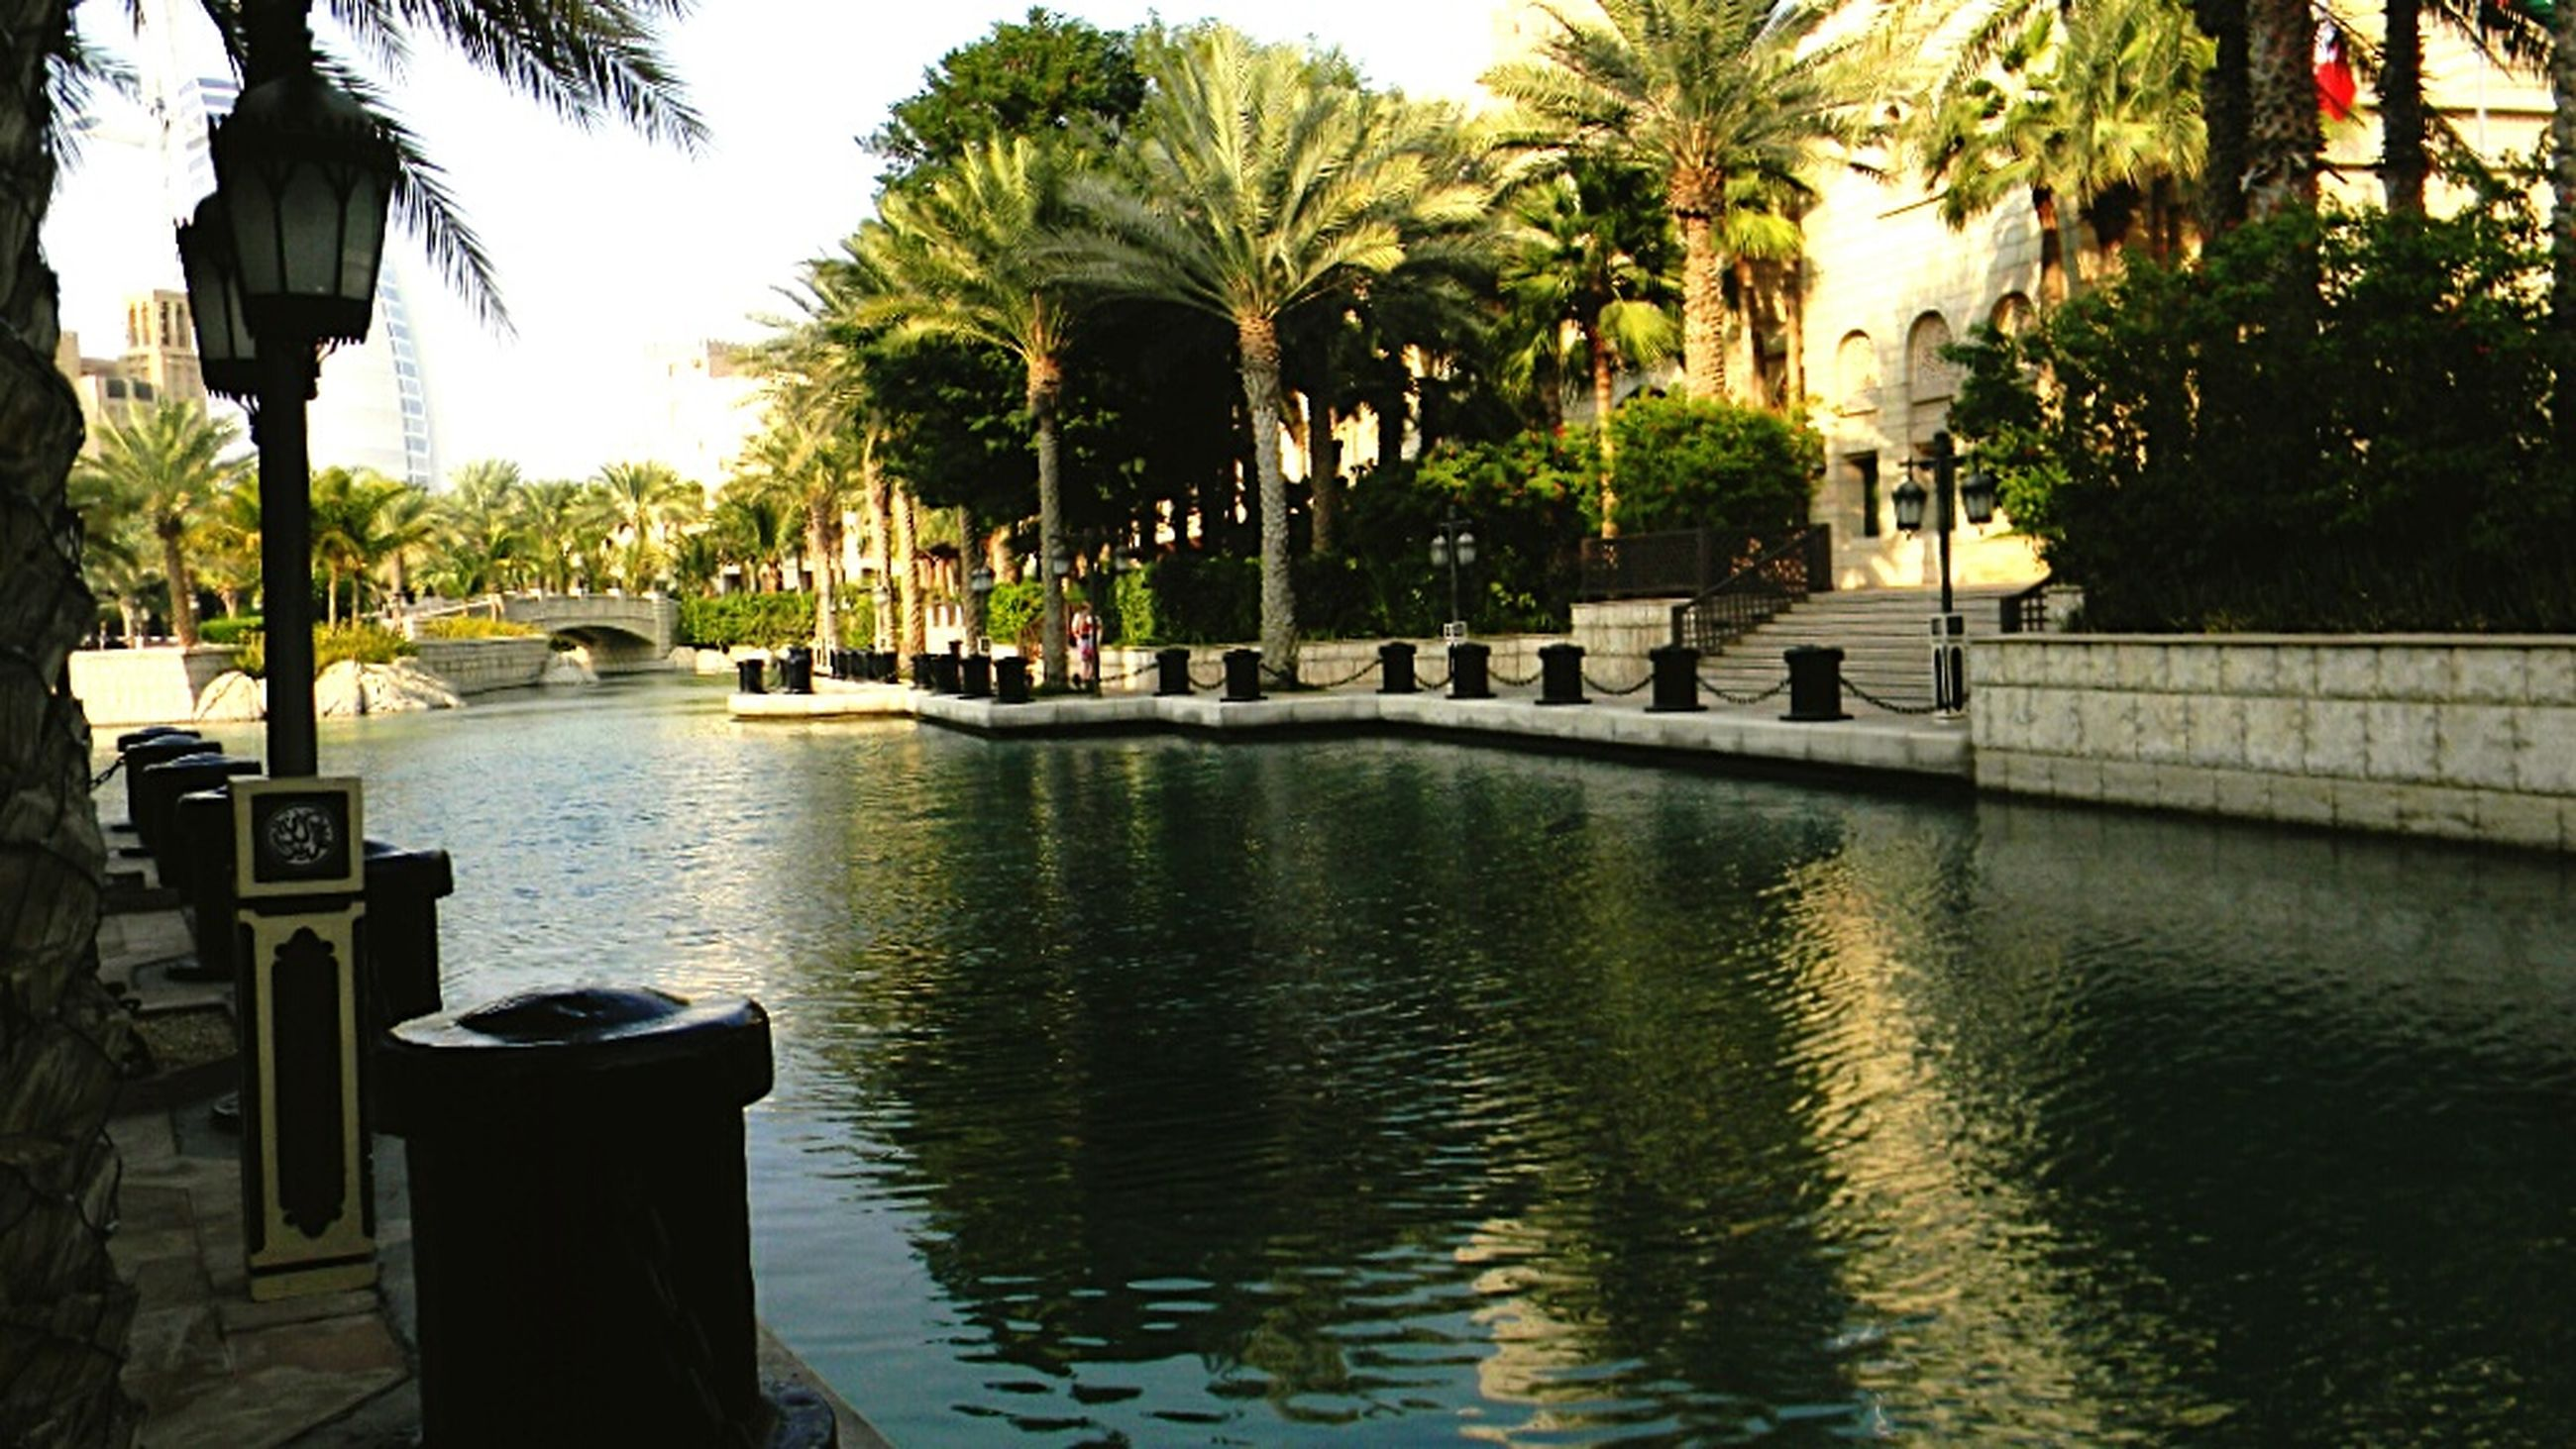 tree, water, palm tree, building exterior, built structure, architecture, incidental people, waterfront, tree trunk, sea, reflection, sky, nature, swimming pool, growth, tranquility, outdoors, city, tourist resort, day